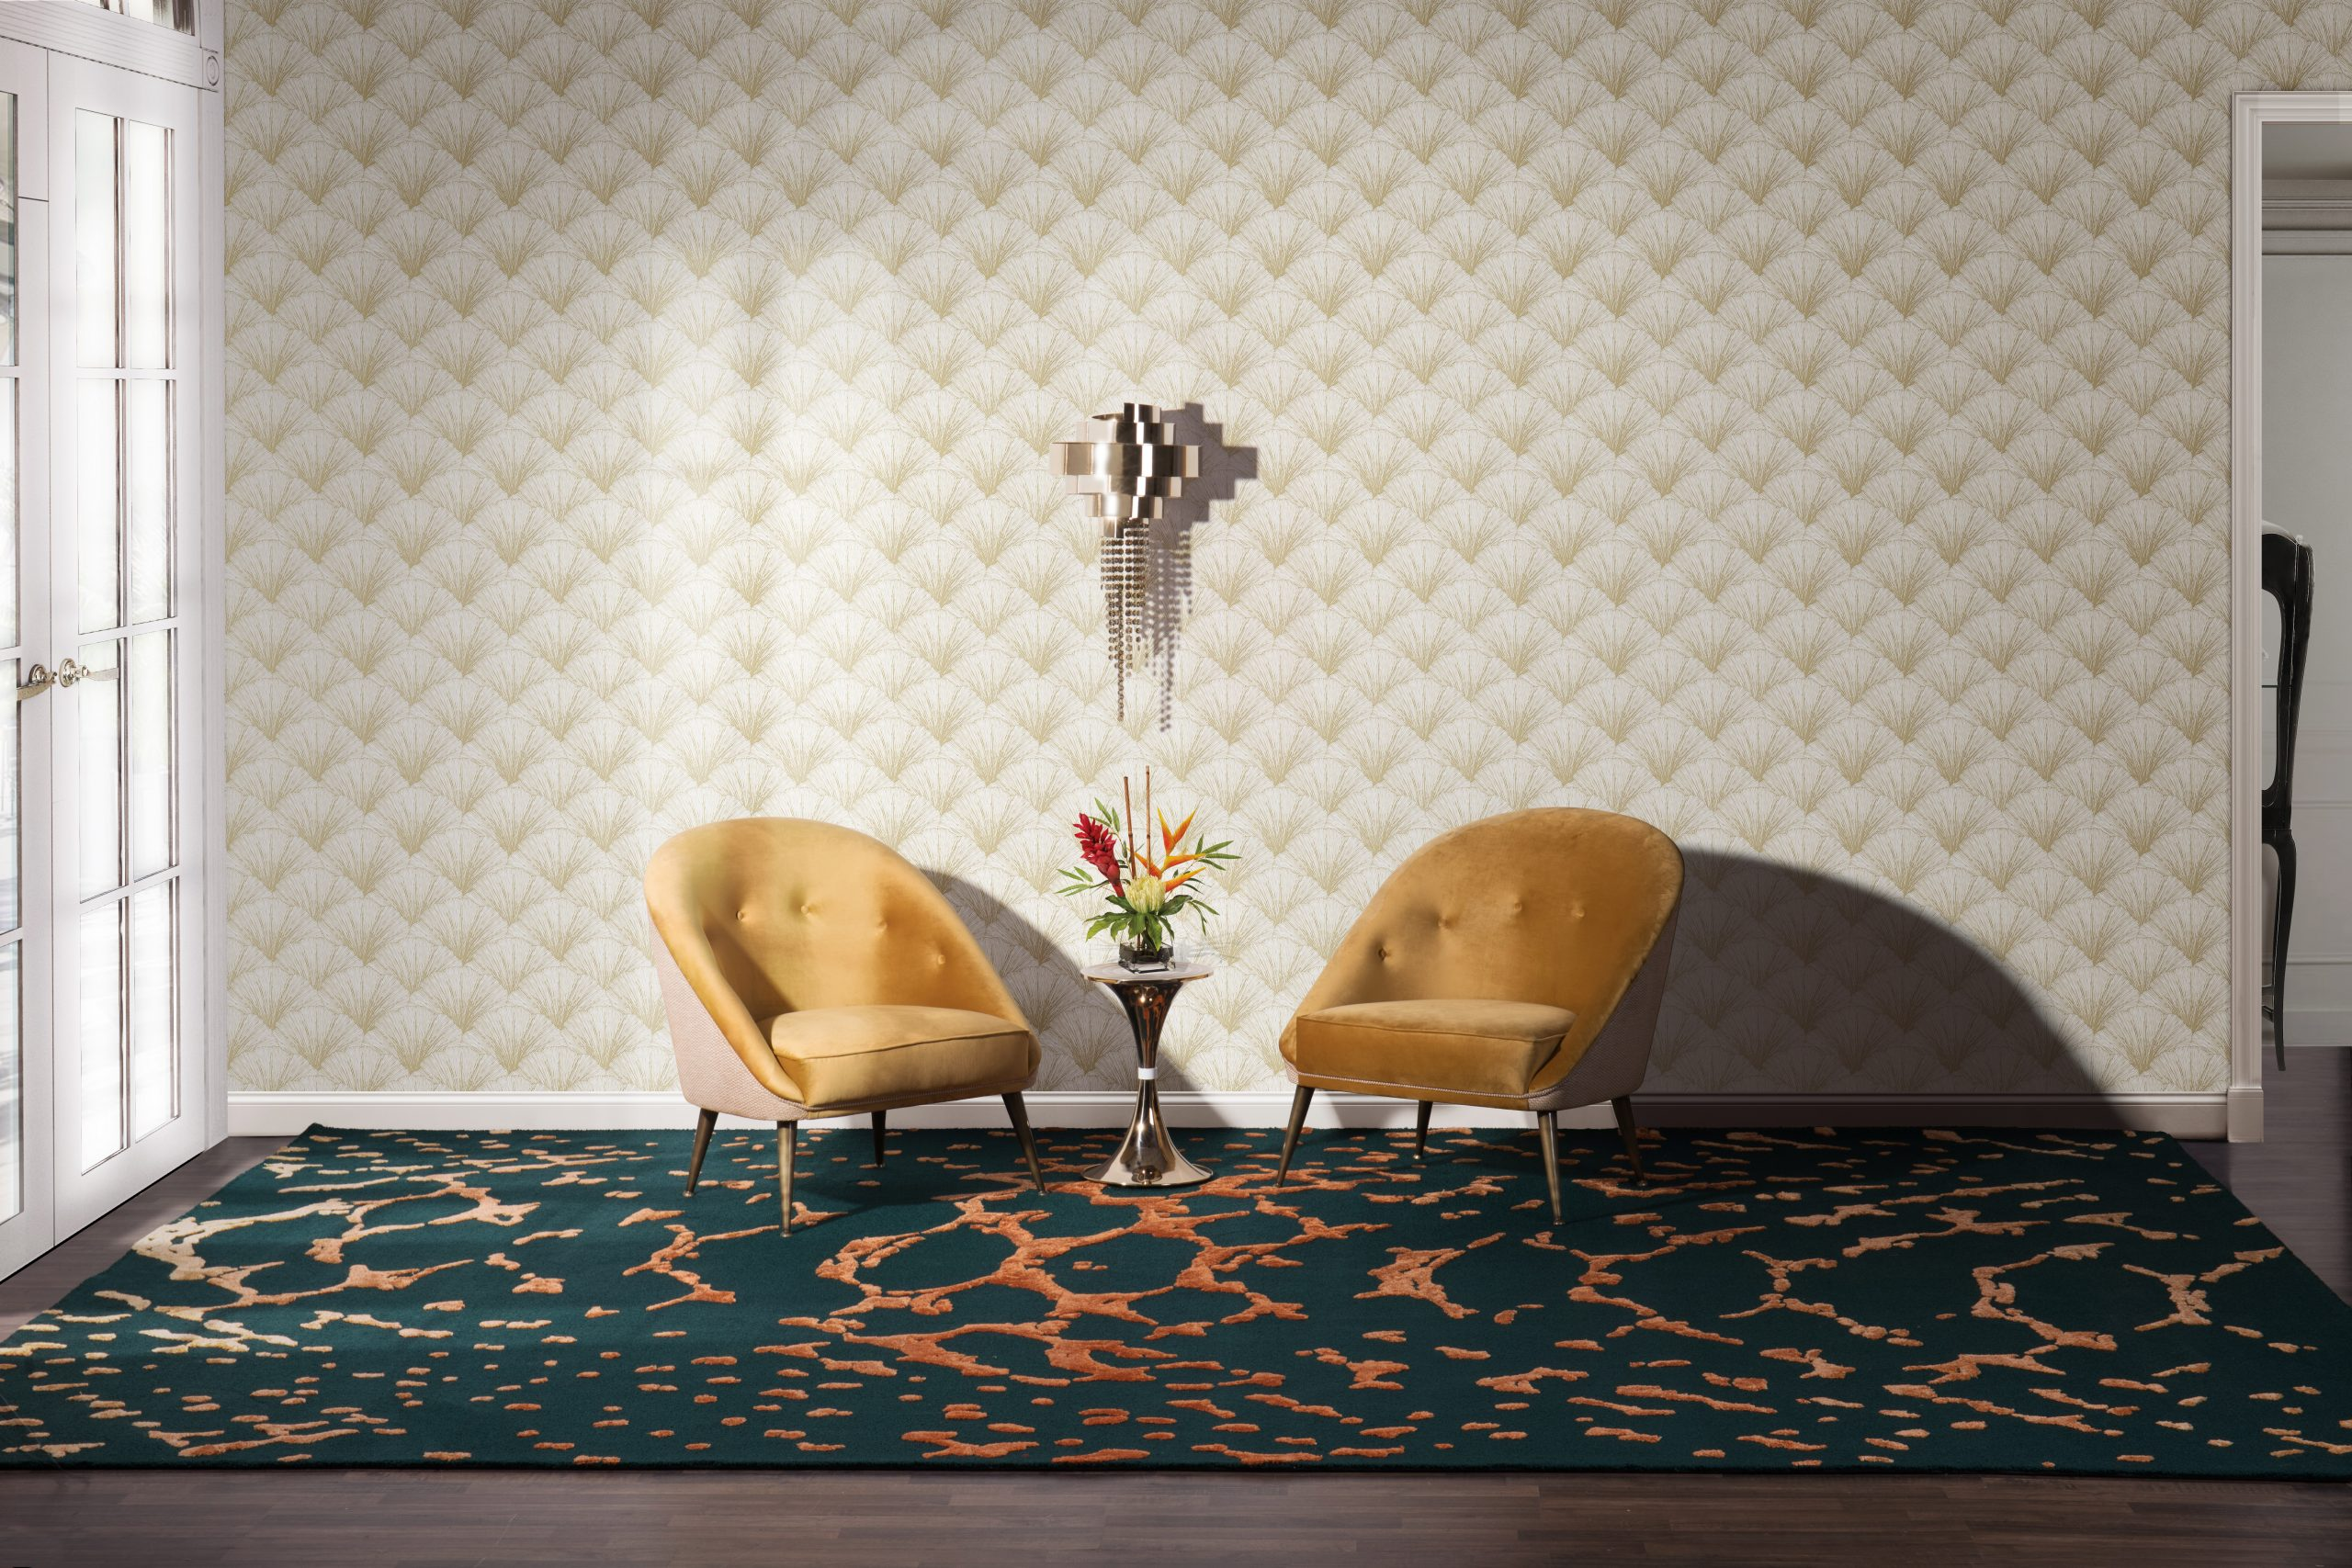 Green Rugs - Best Ideas To Add A Touch Of Color In Your Home green rugs Green Rugs – Best Ideas To Add A Touch Of Color In Your Home meta savage living room scaled